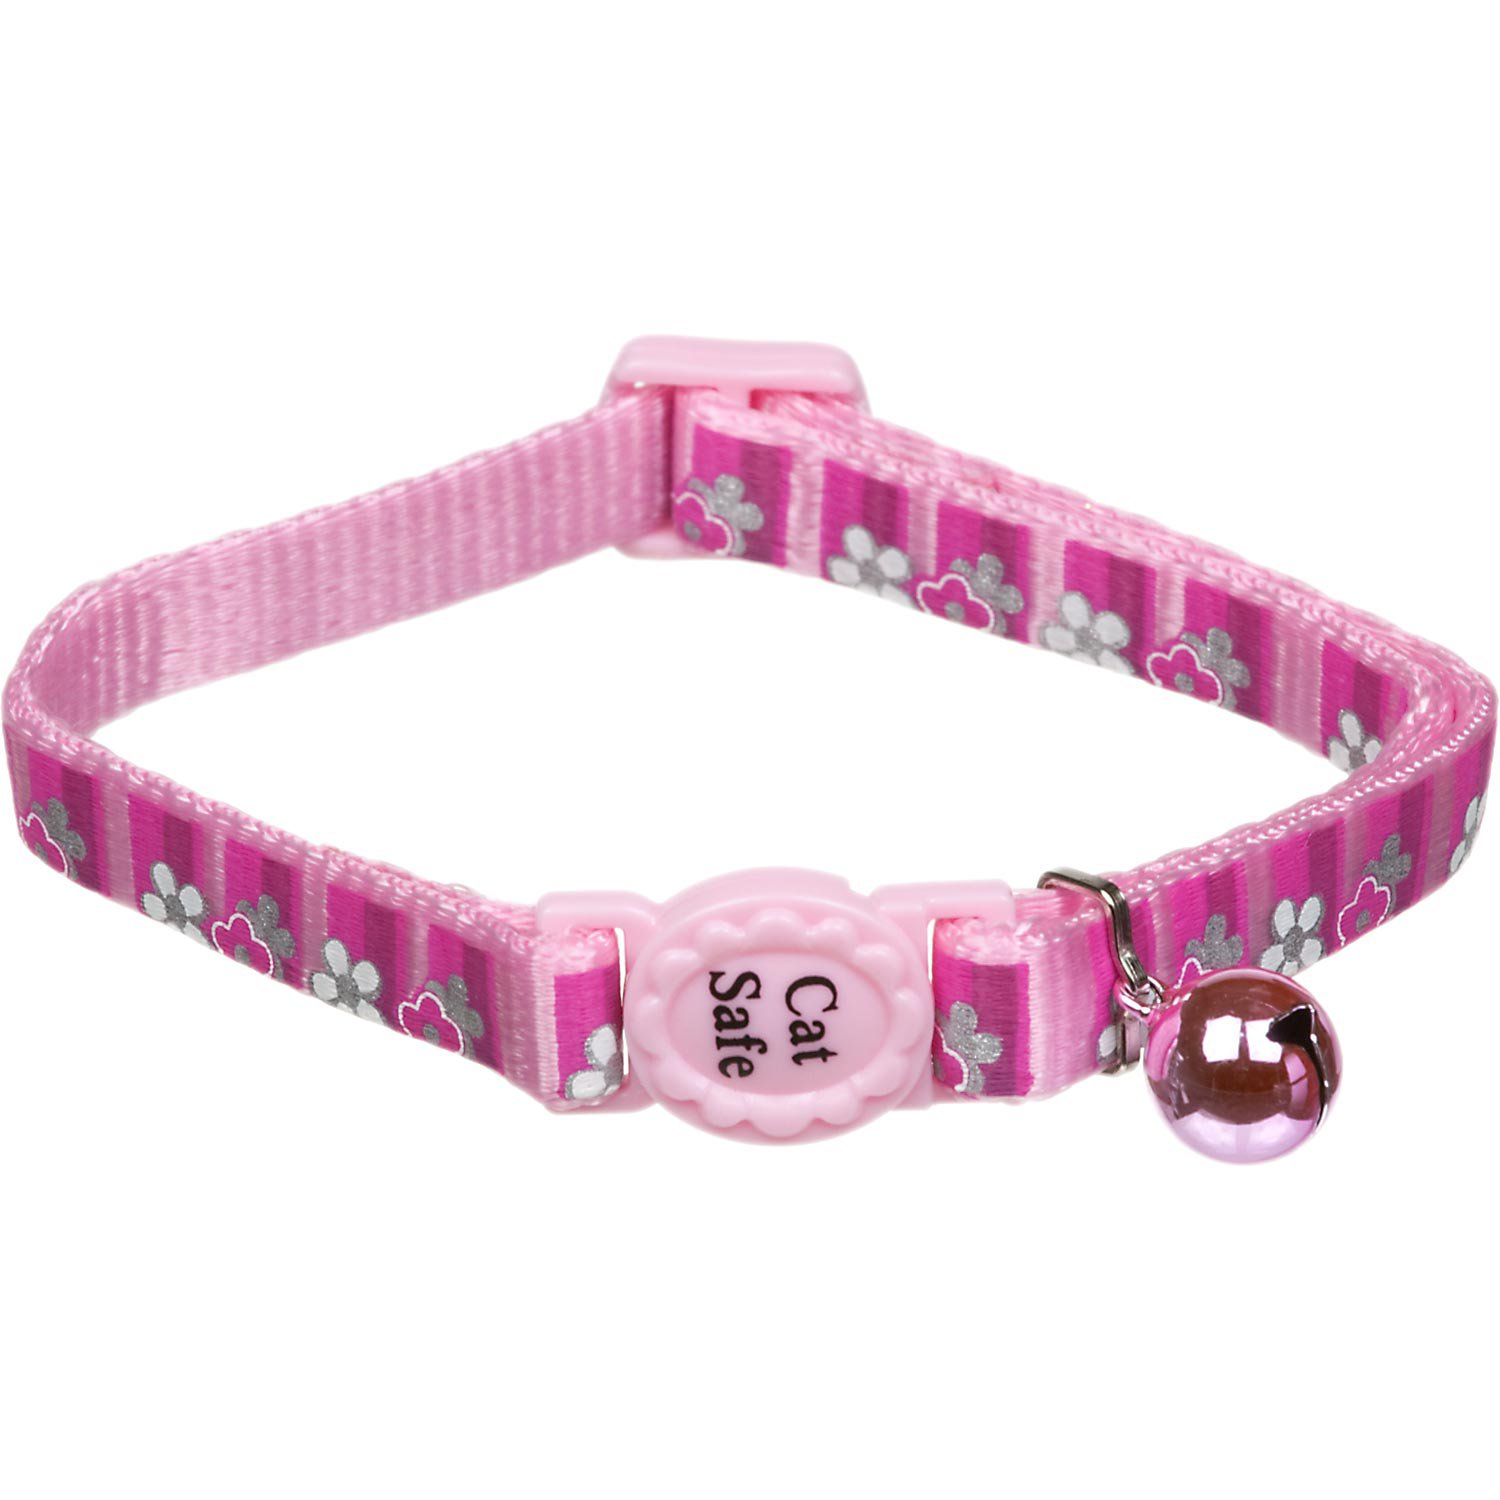 Coastal Pet Safe Cat Reflective Breakaway Collar in Pink Daisy Print